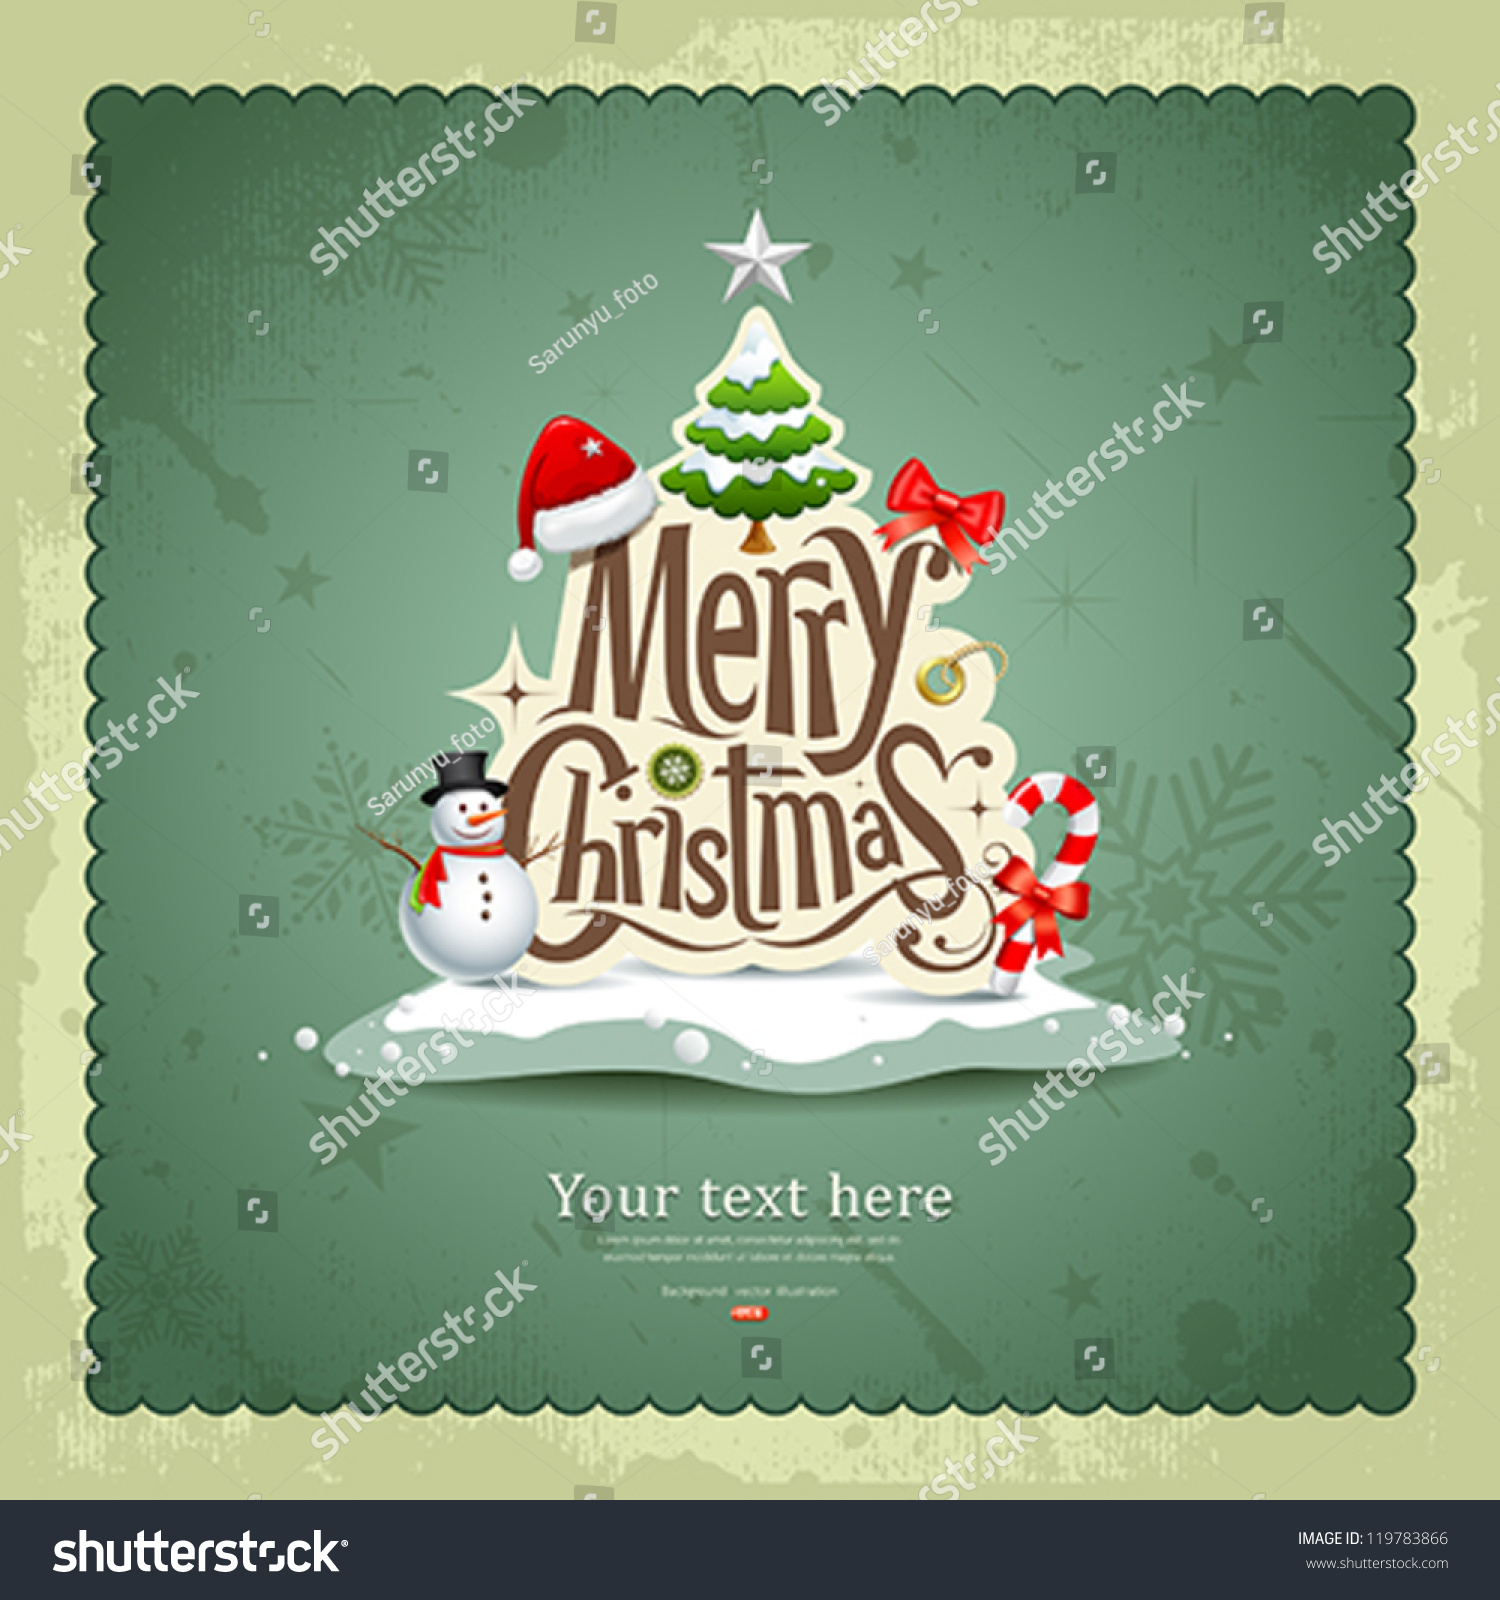 Greeting Card Merry Christmas Stock: Merry Christmas Vintage Design Greeting Card Stock Vector